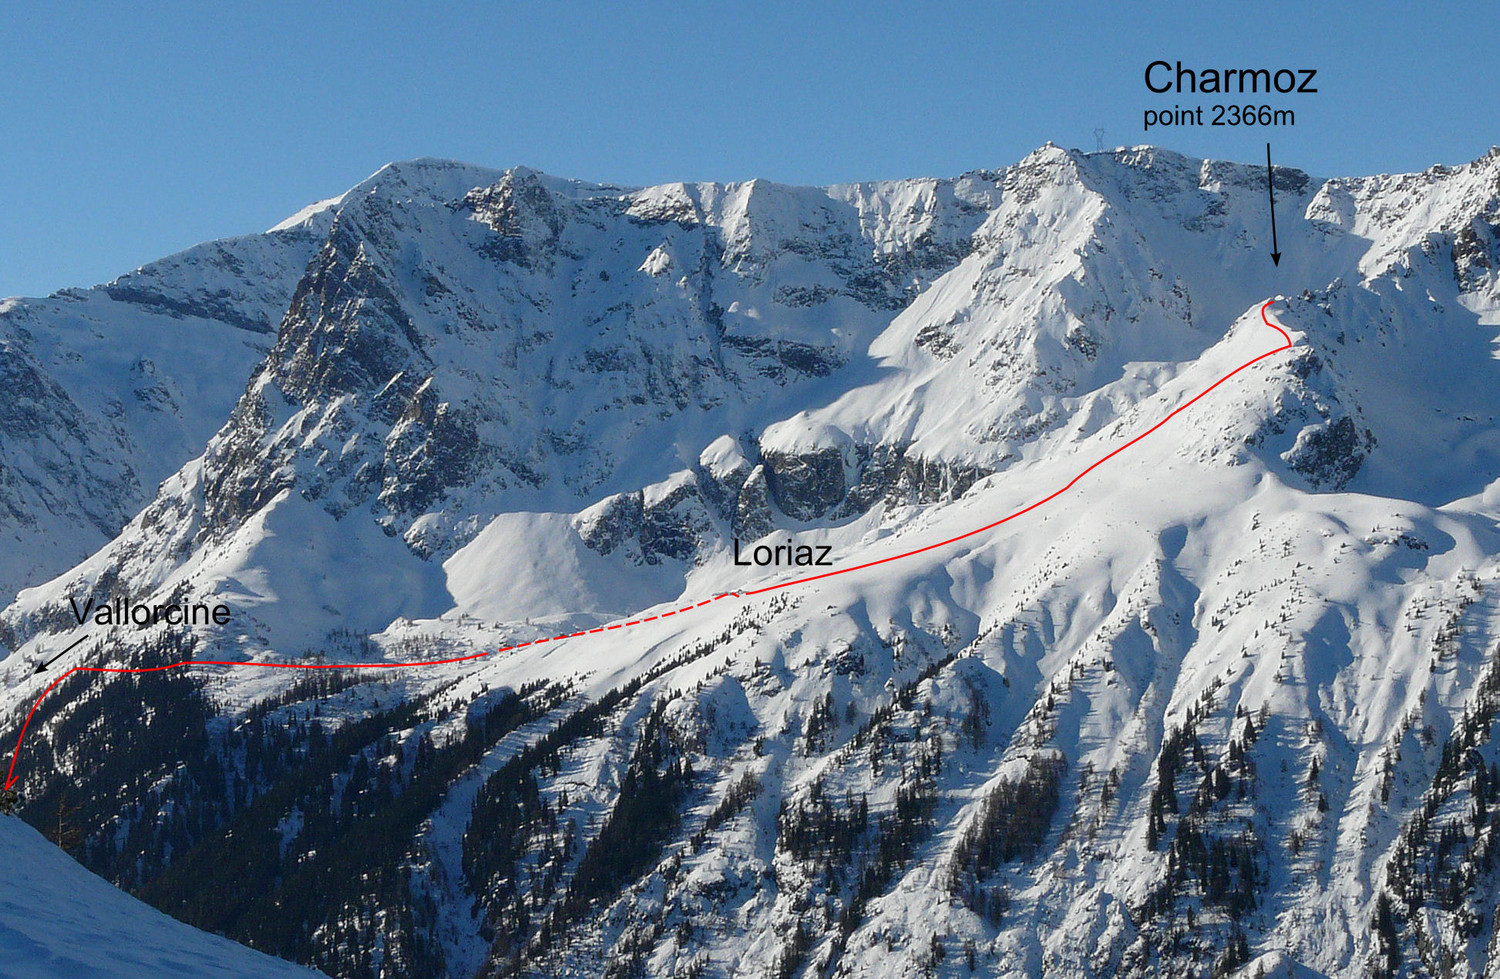 Le Charmoz (point 2366m) (Loriaz, Vallorcine)